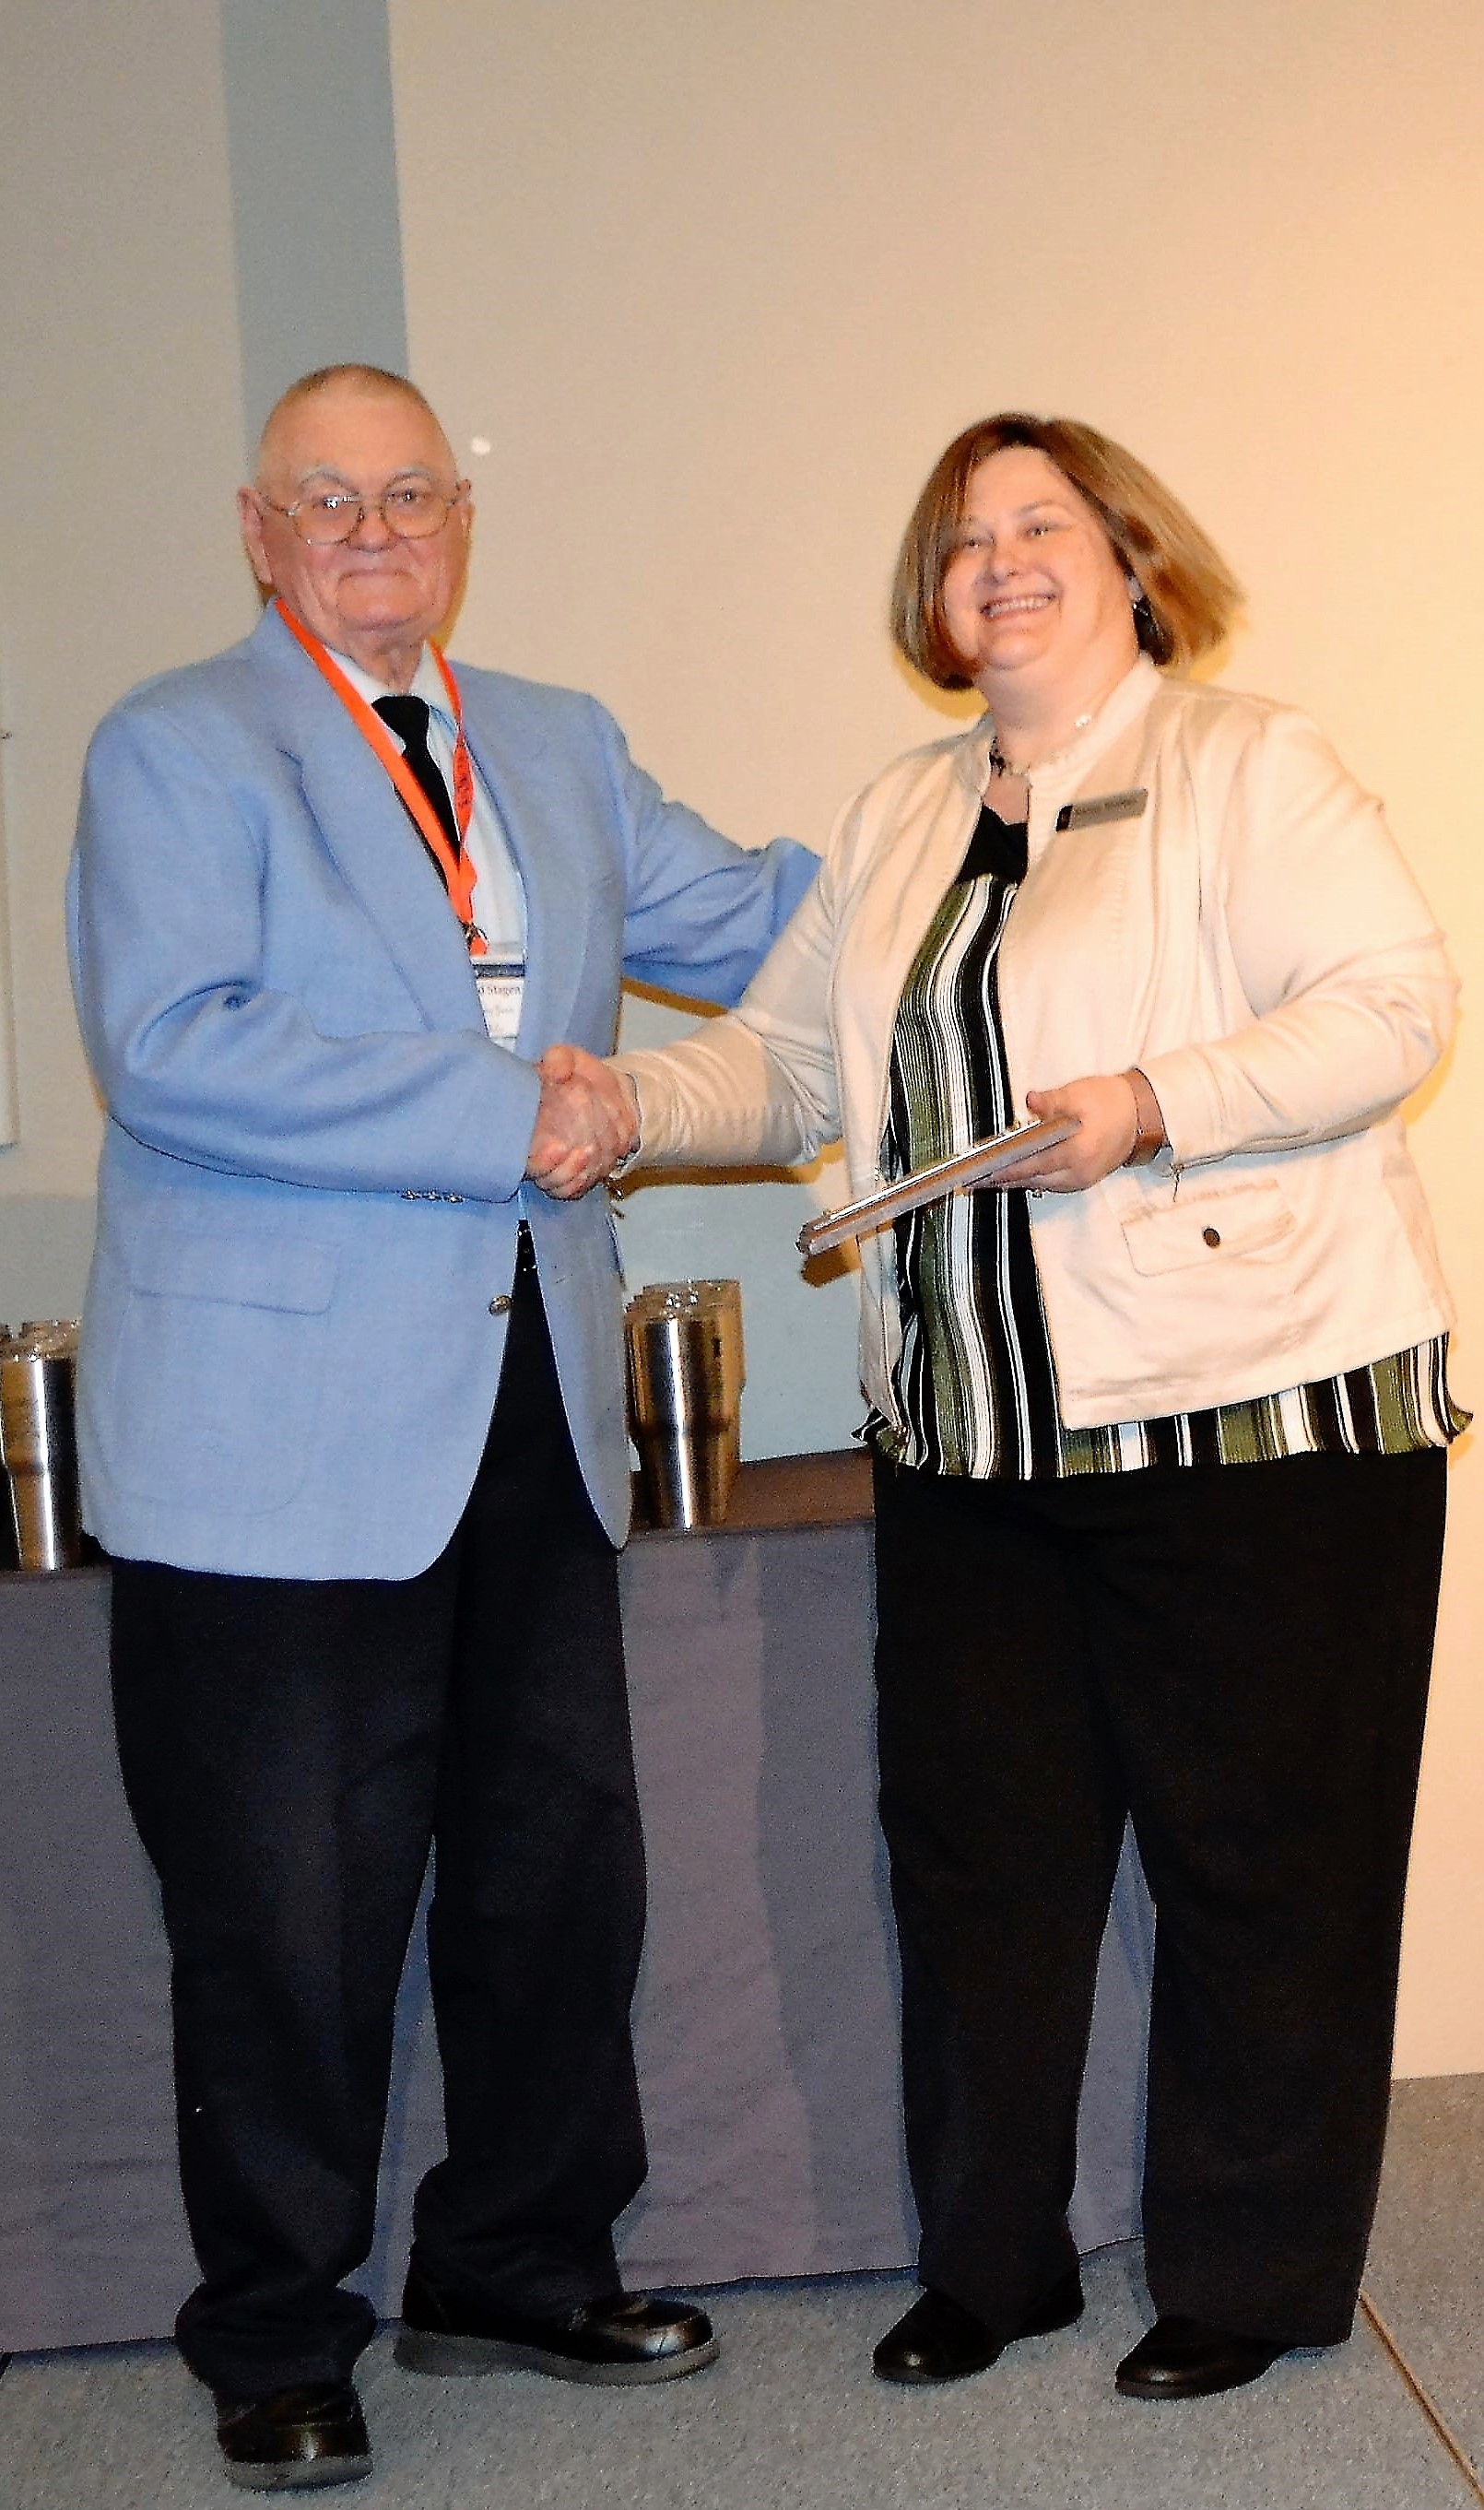 Kathy Stalter and Honoree Donald Stagen